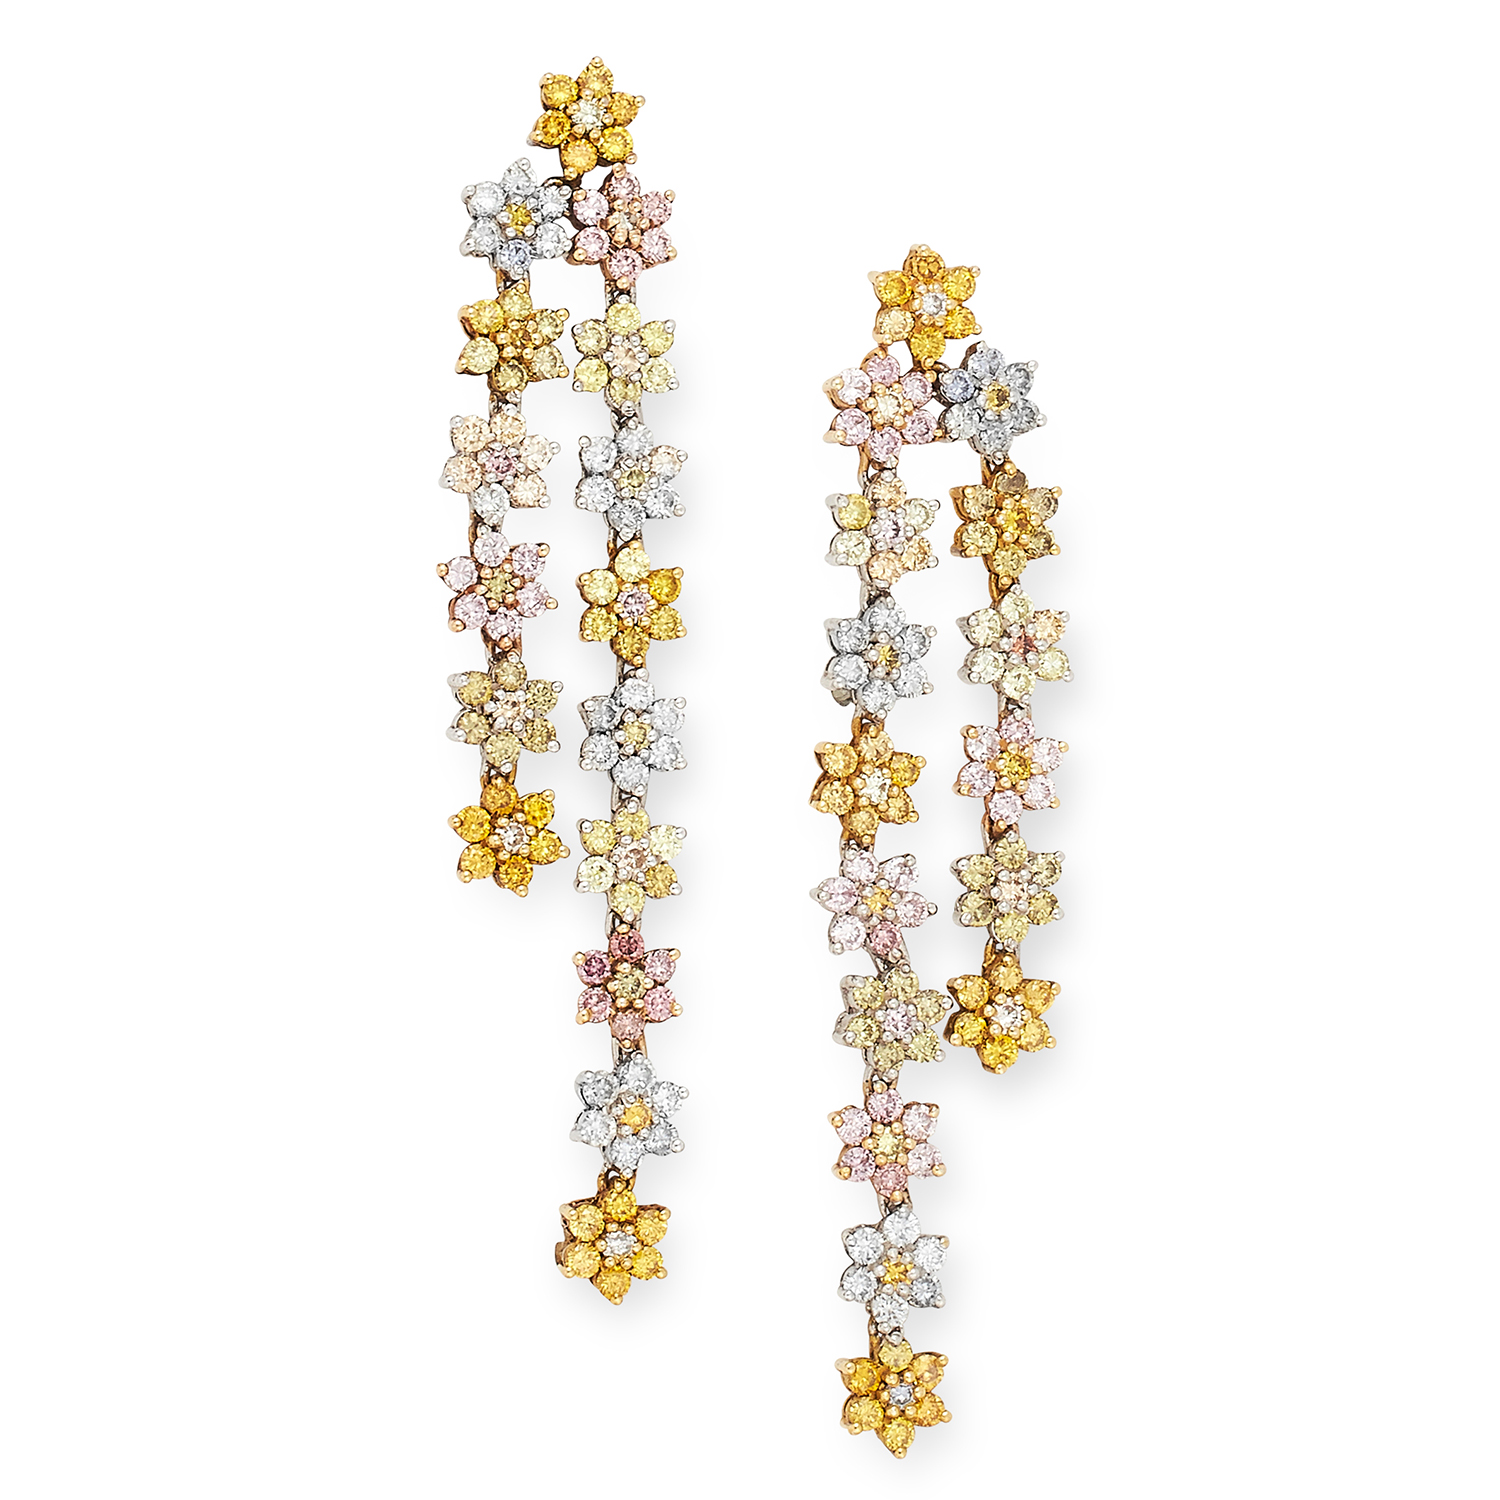 YELLOW, PINK AND WHITE DIAMOND DROP EARRINGS each set with a floral cluster of round cut yellow,